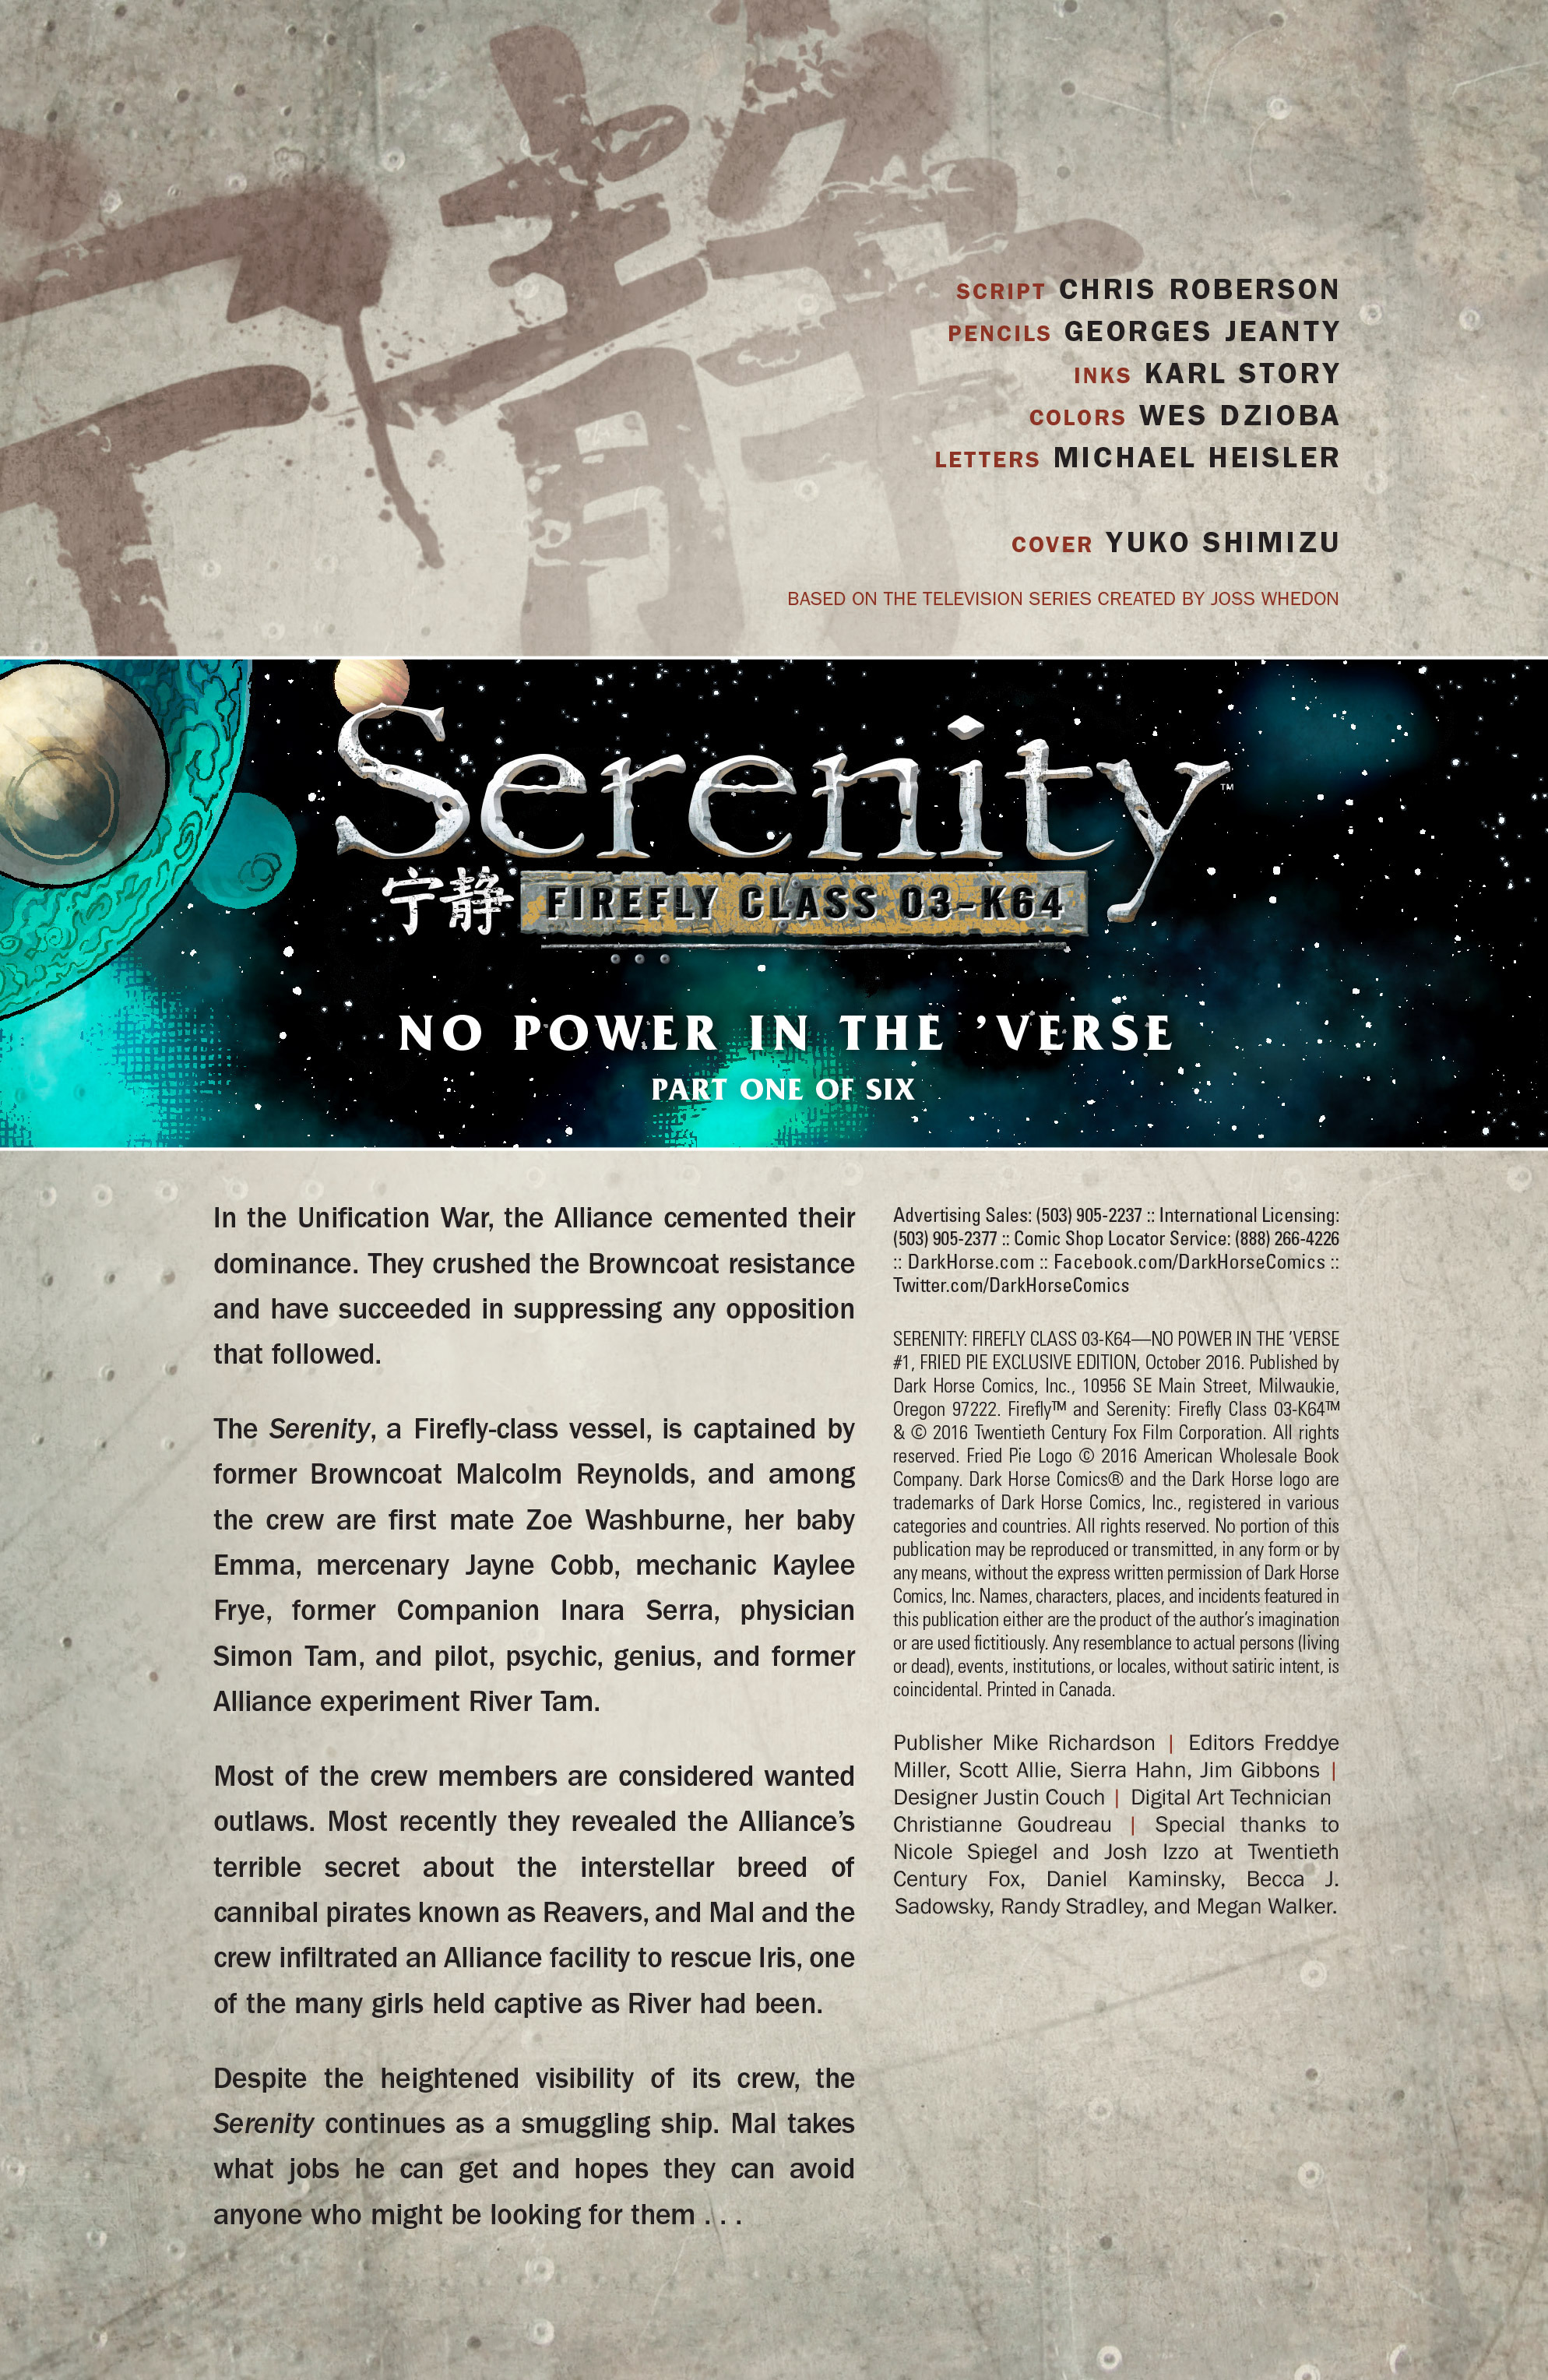 Read online Serenity: Firefly Class 03-K64 – No Power in the 'Verse comic -  Issue #1 - 10